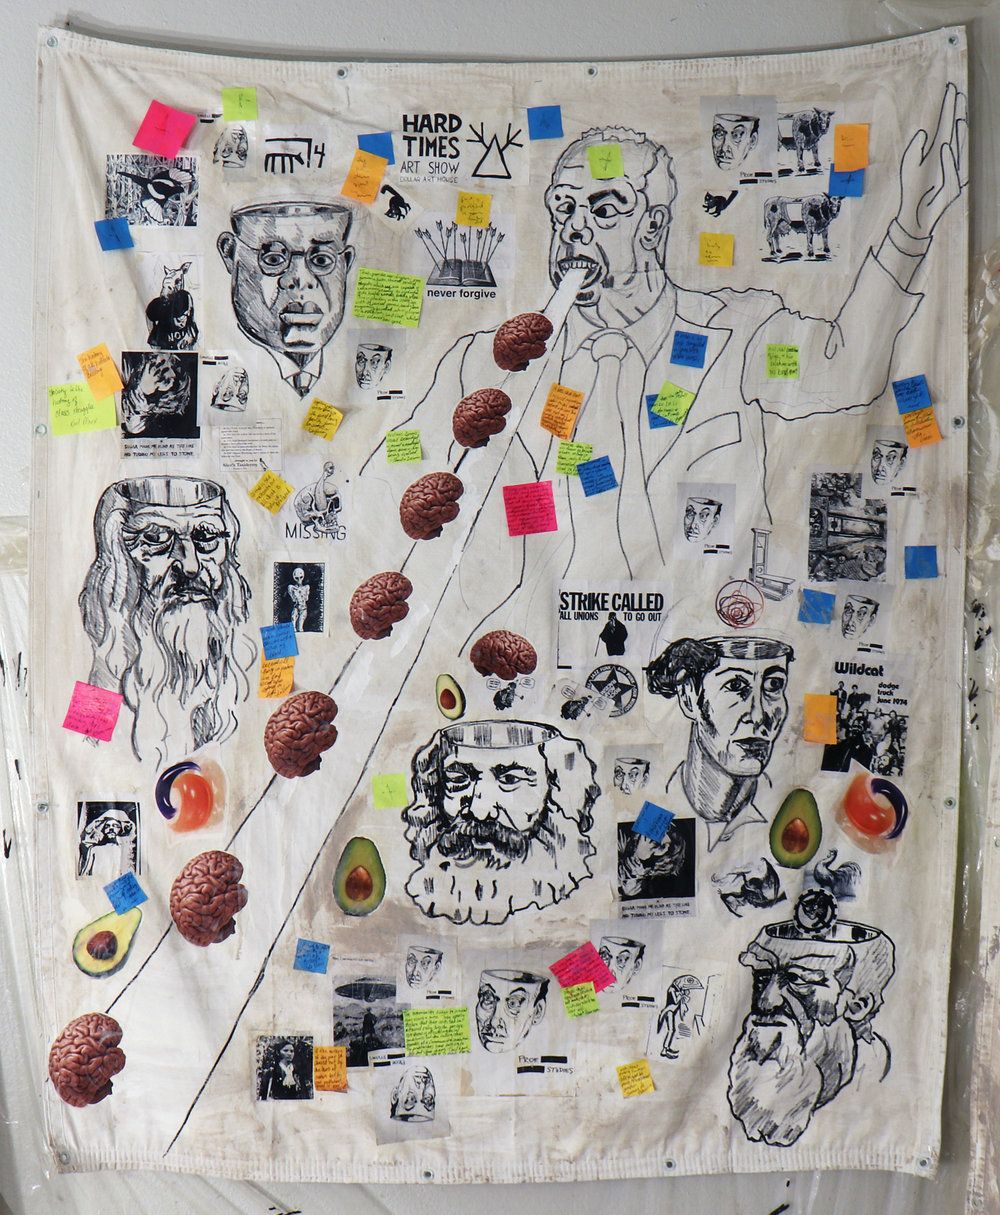 Erasure Chancellor / Carlo Montemagno Eats Brains    Acrylic, ink, photocopies, stickers, post-it notes, coffee and mixed media on canvas tarp (2018).